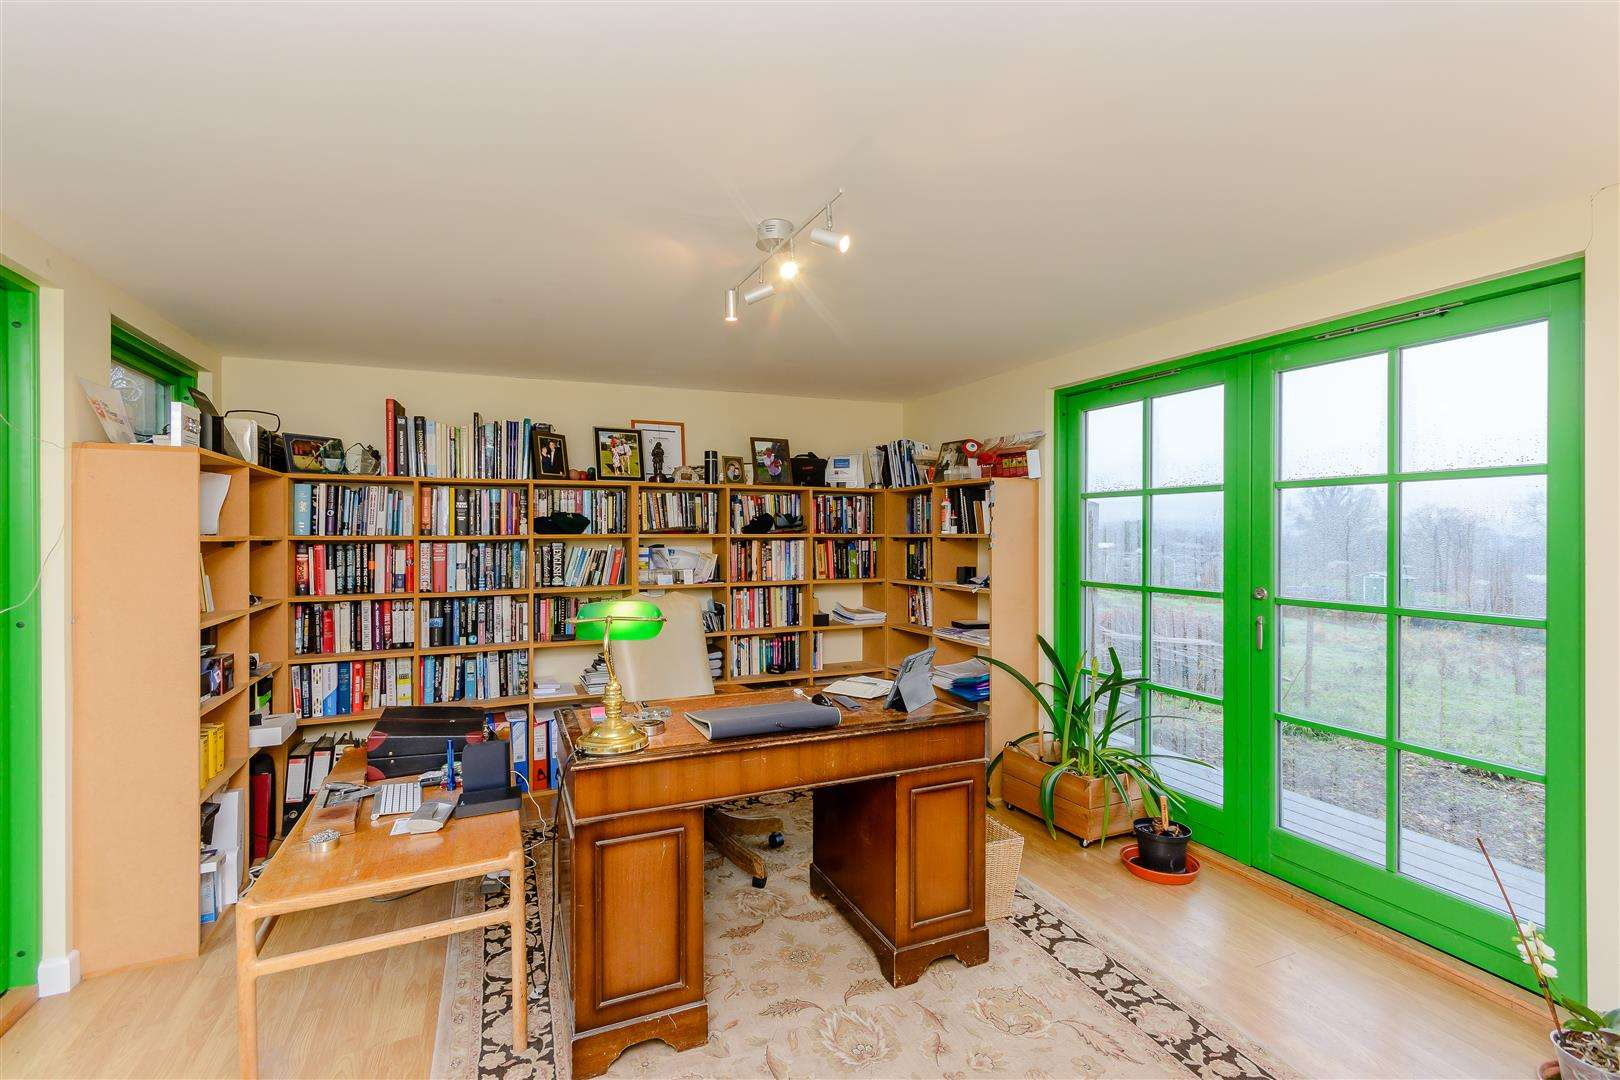 4 bed for sale in Merry Hill Road, Bushey - (Property Image 11)